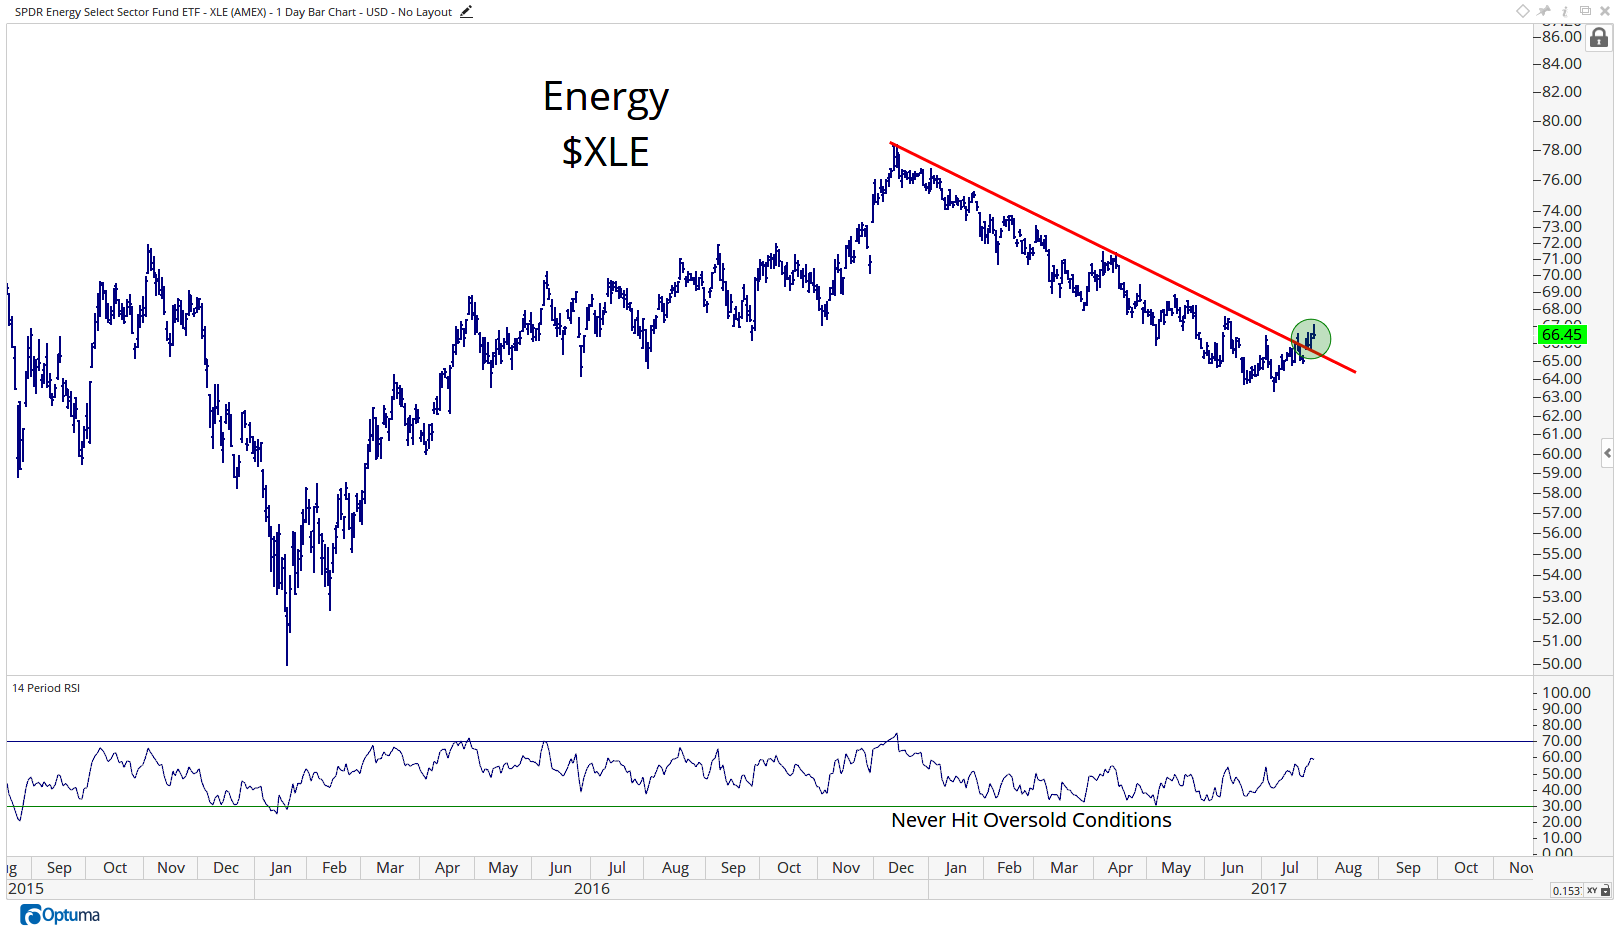 XLE - SPDR Energy Select Sector Fund ETF3